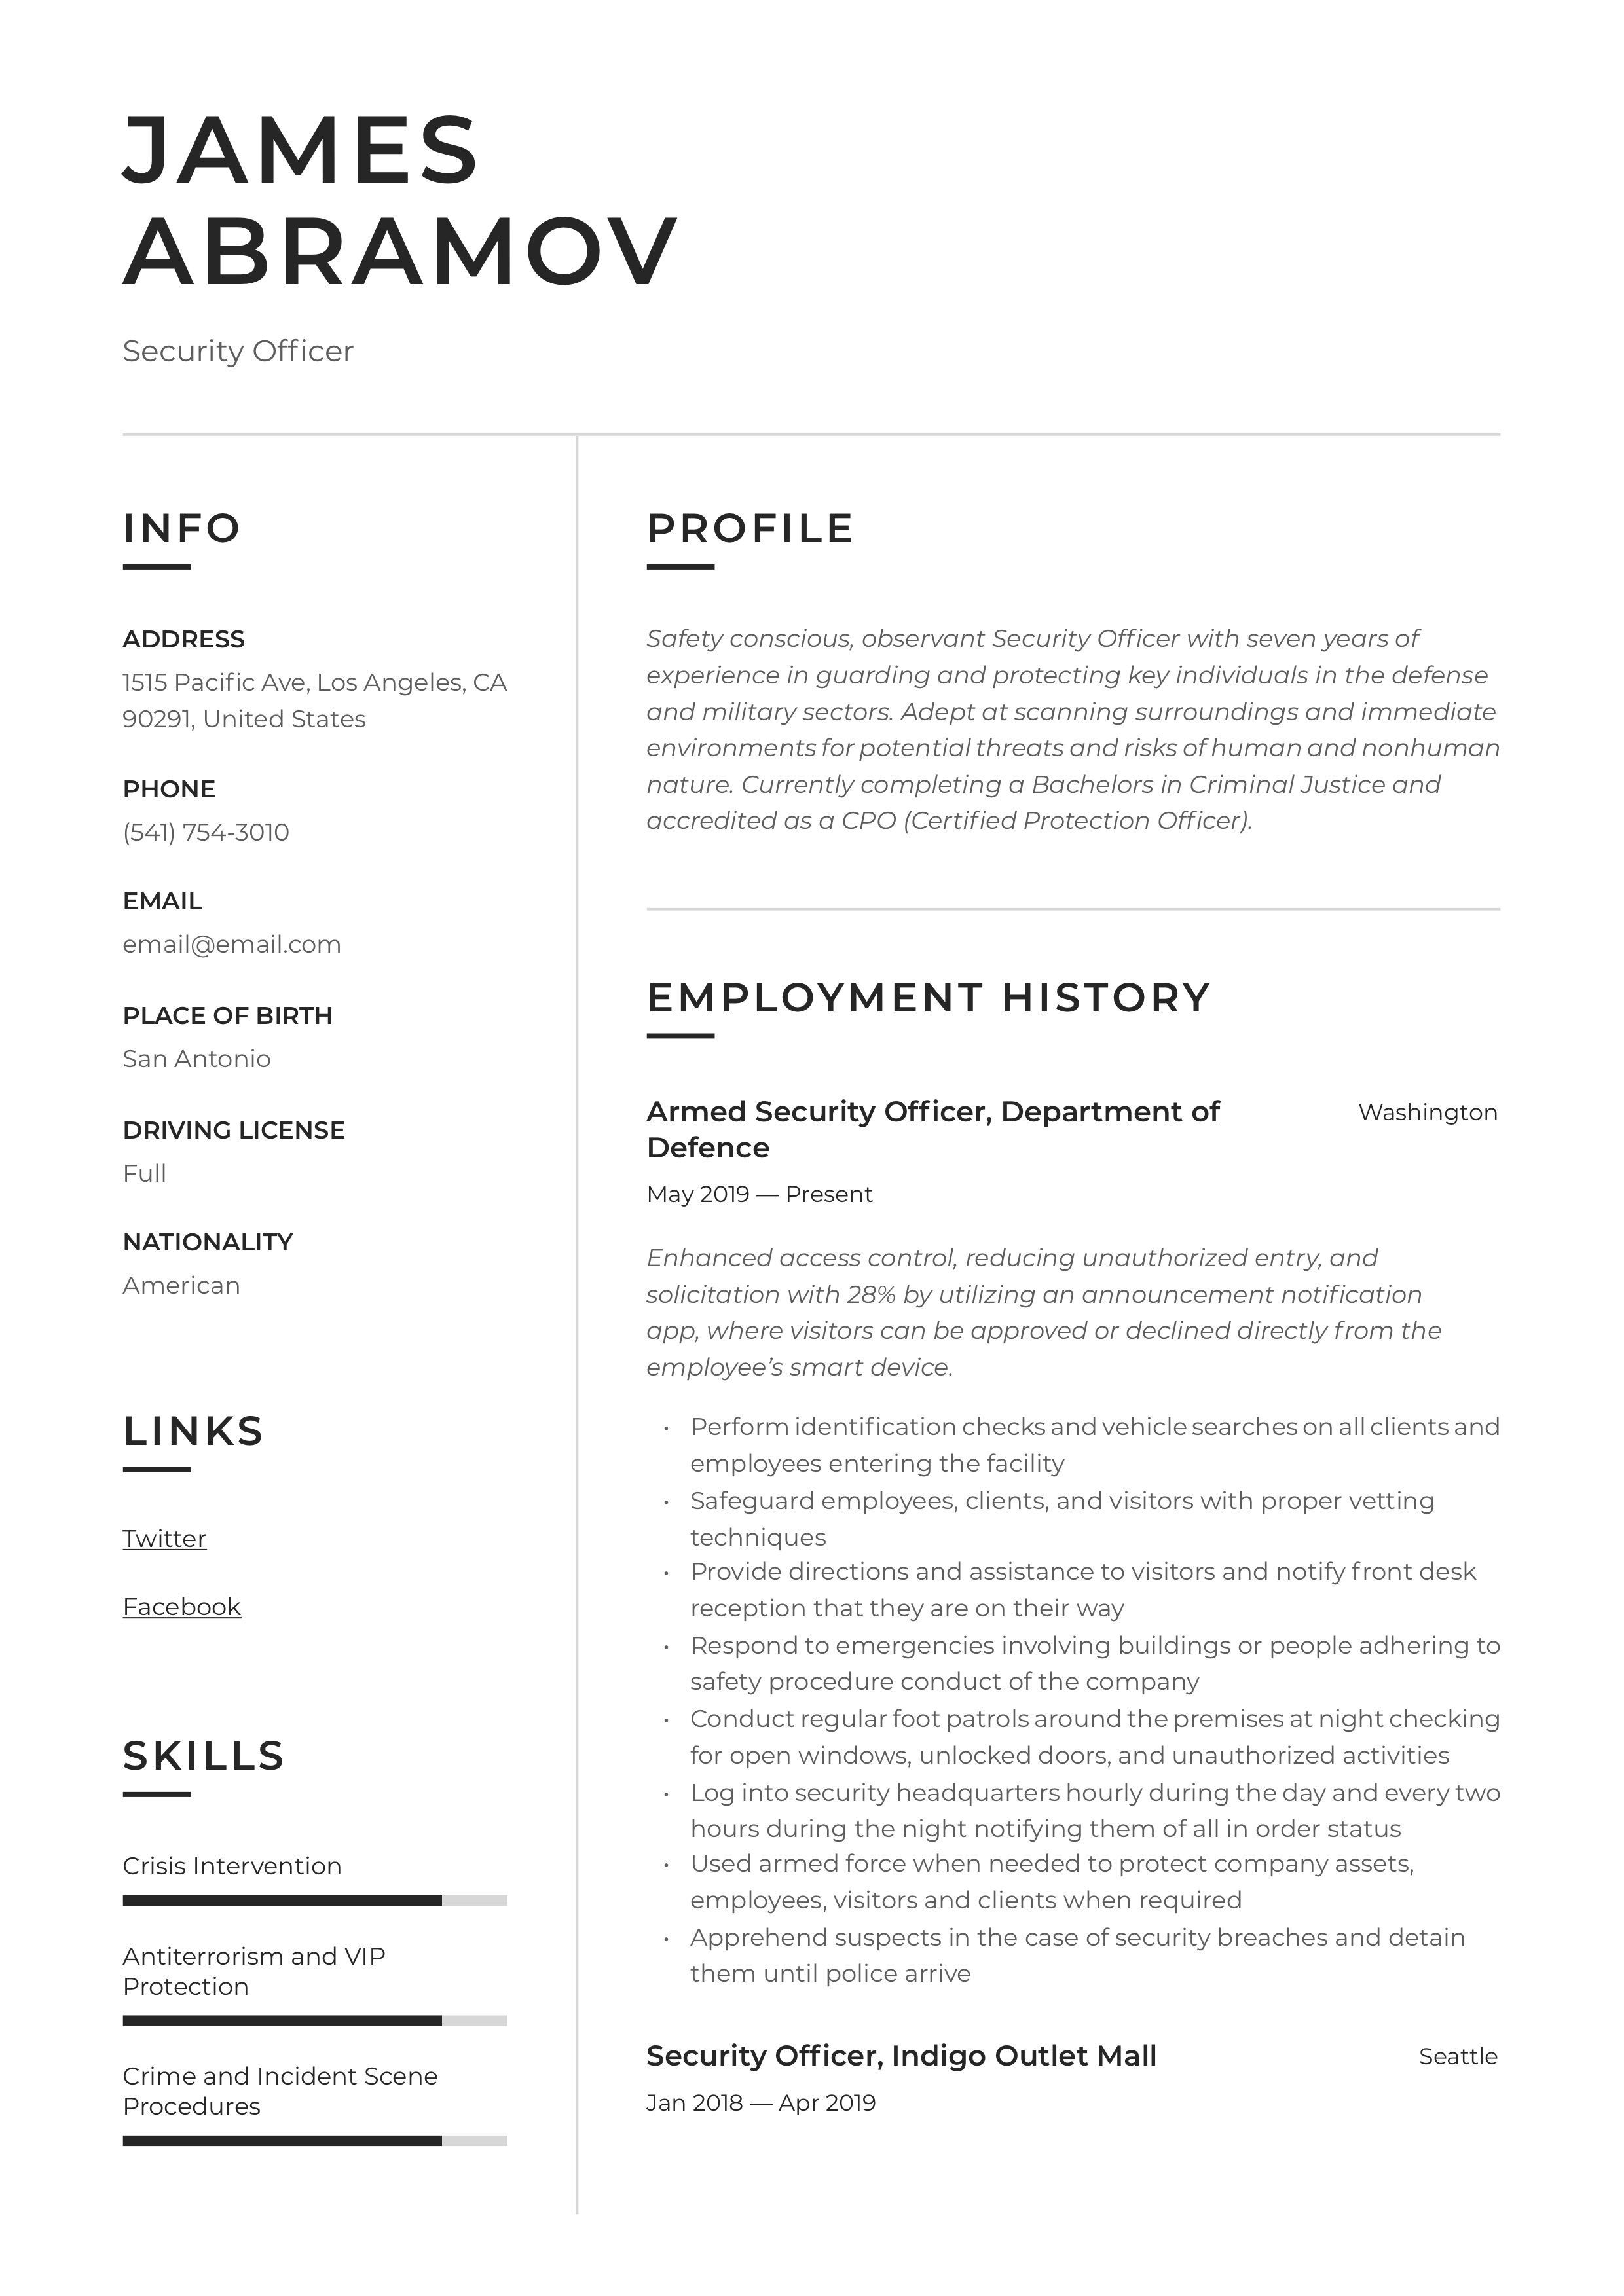 Security Officer Resume Sample in 2020 Security officer